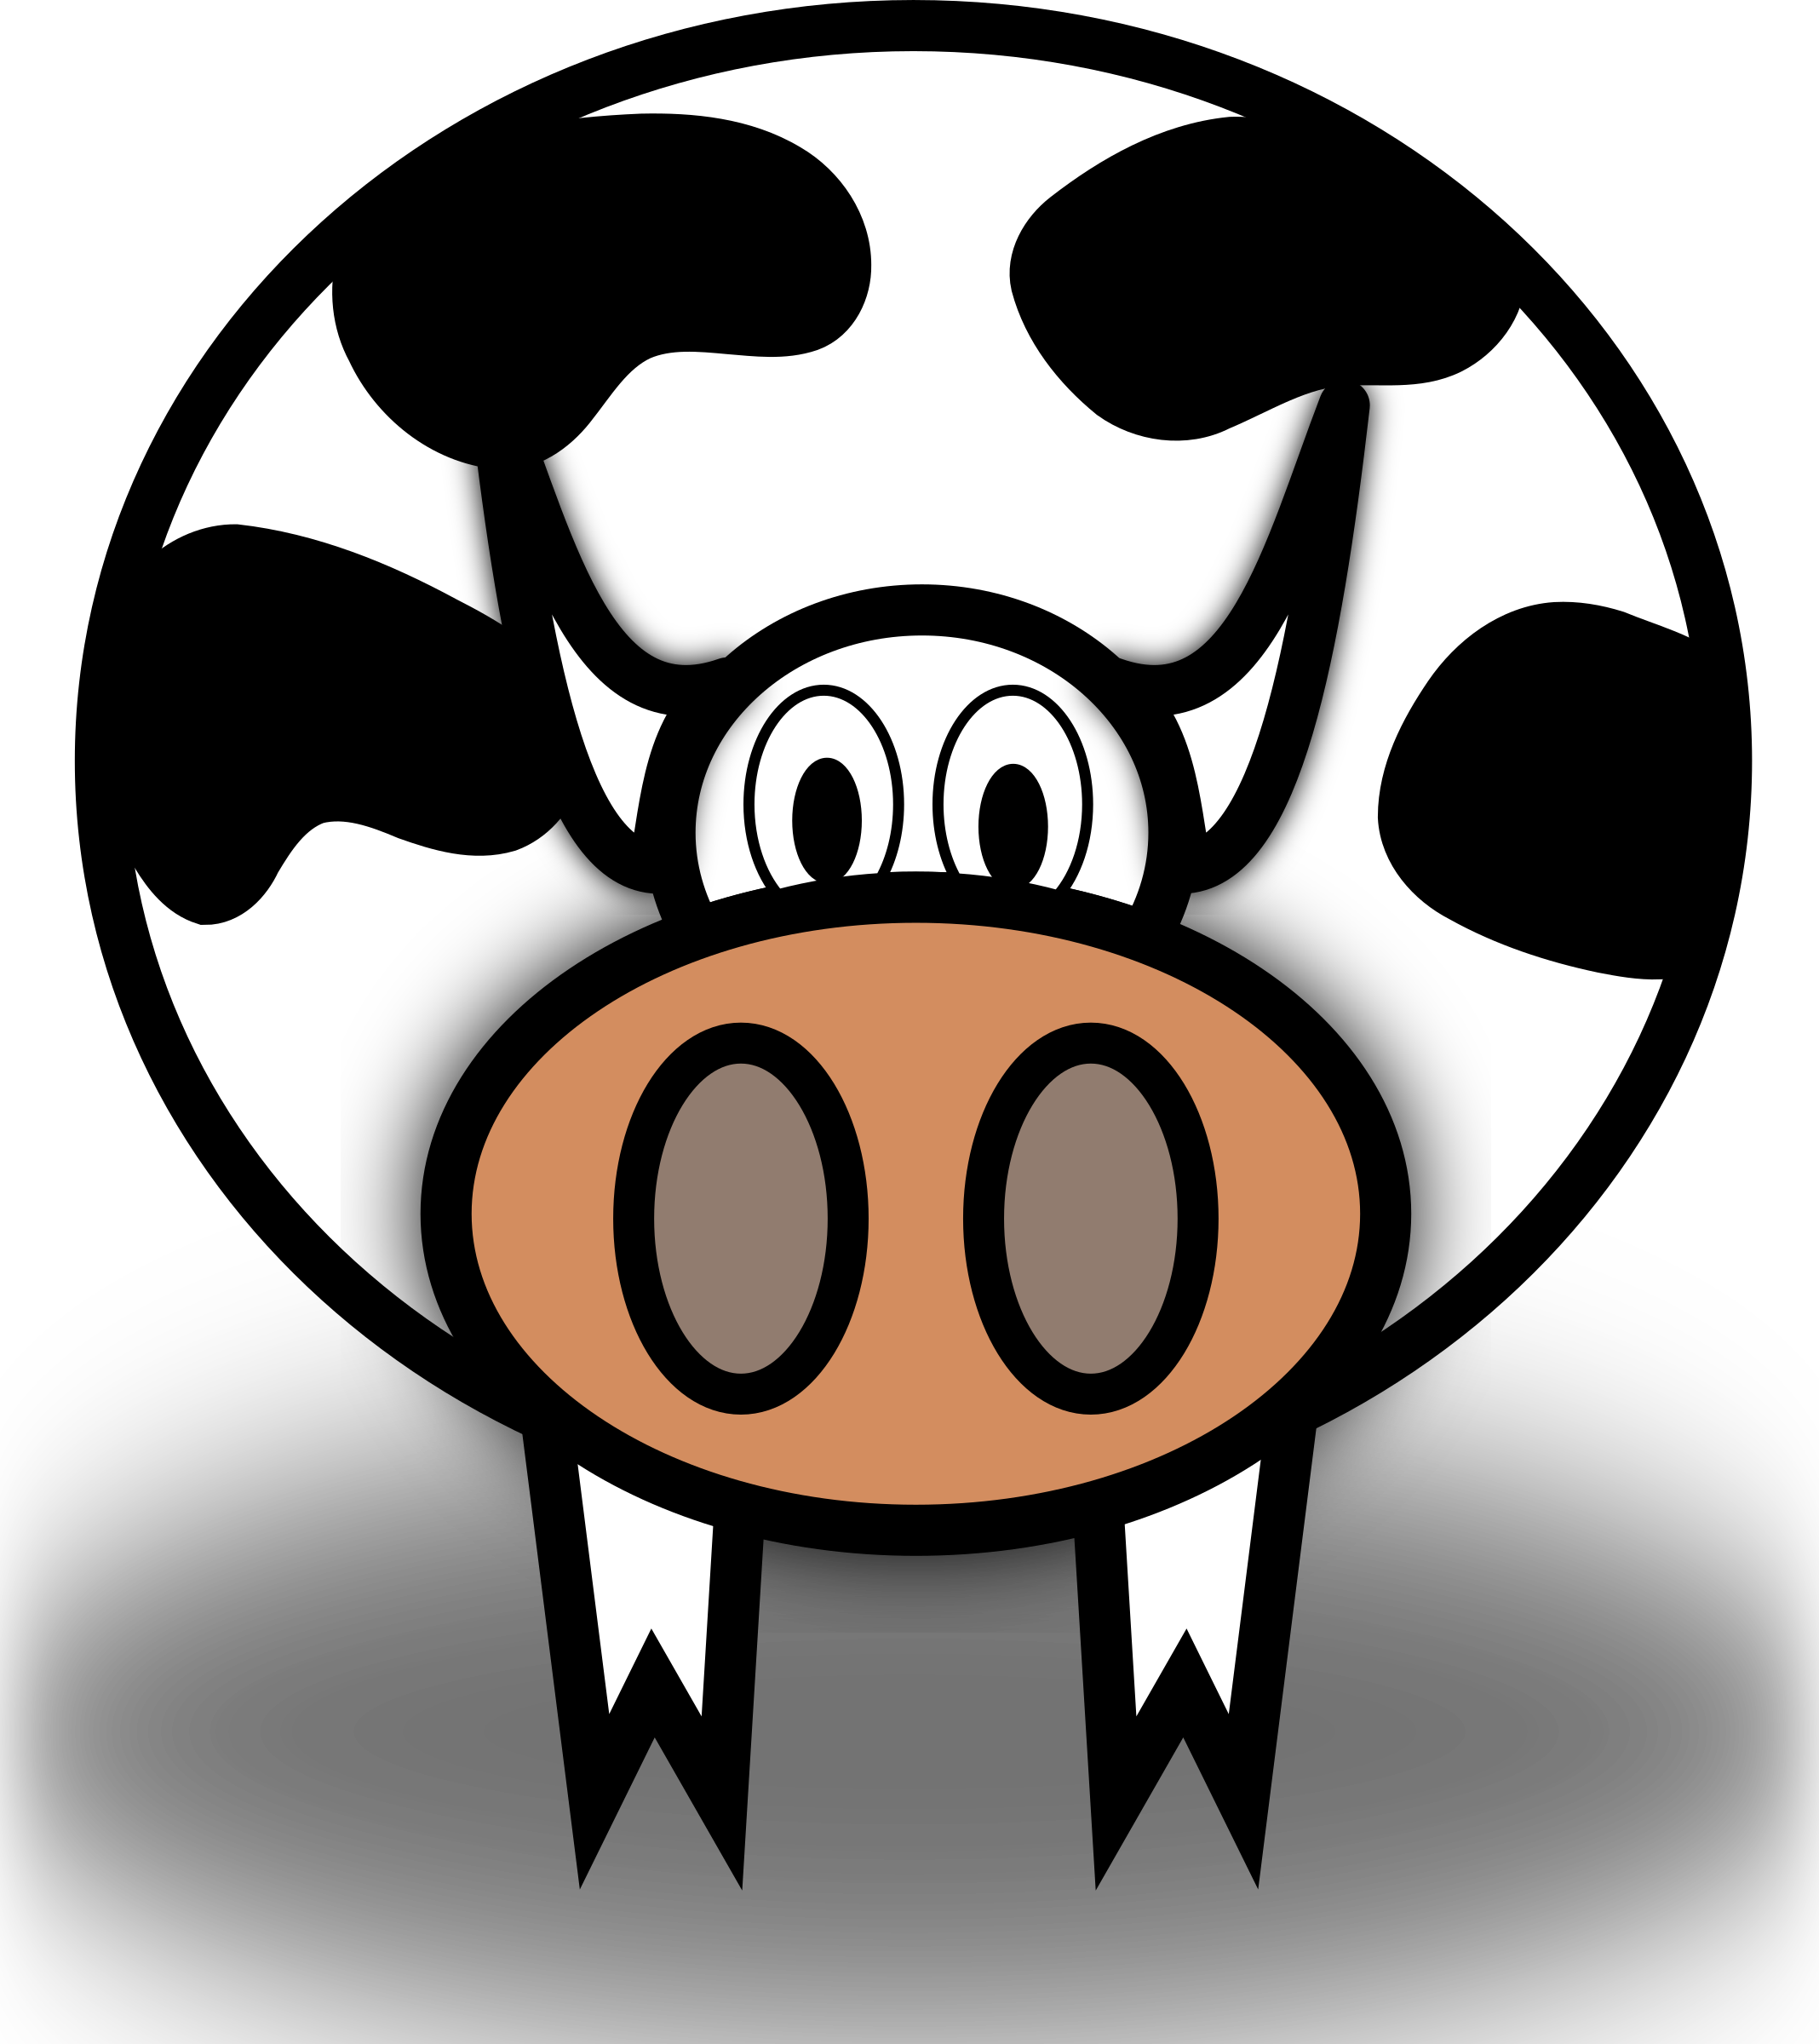 Cow by bsantos